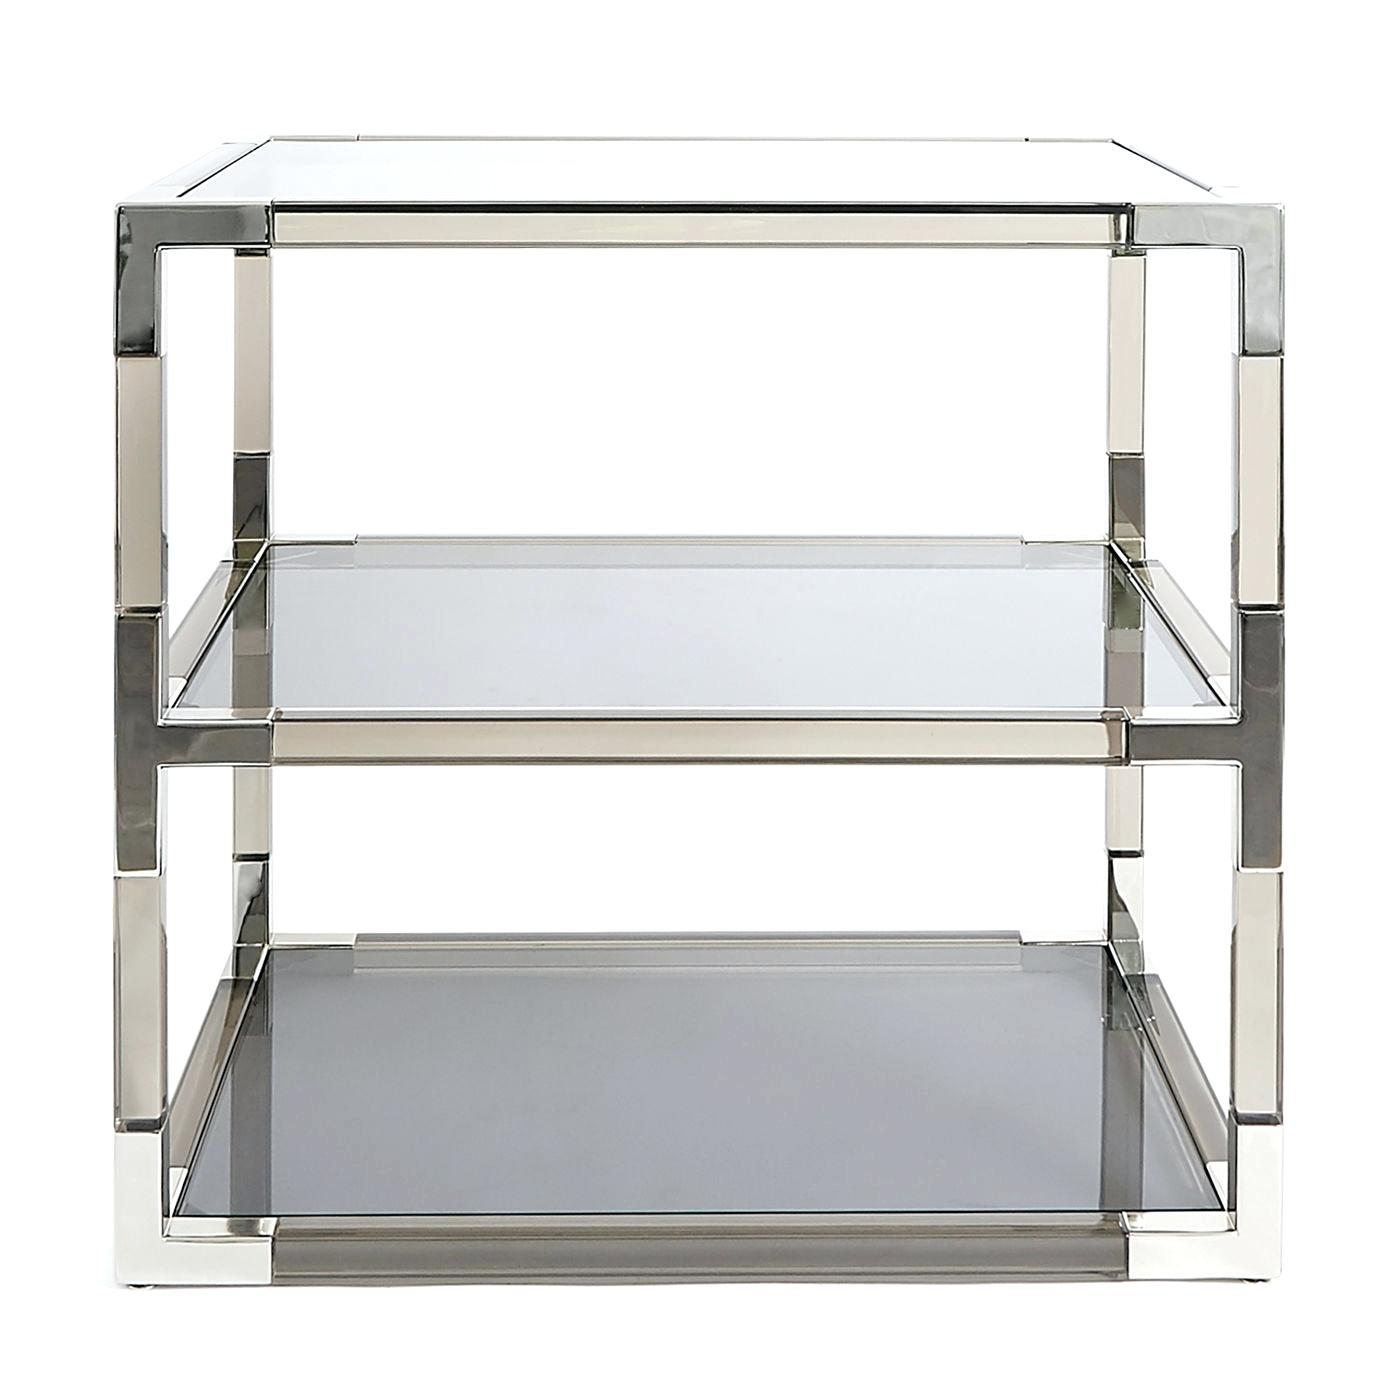 accent side table bowl mater tables two tier alt target monarch cappuccino marble bronze metal ikea tops slate end mirrored nightstands extra long narrow console slim magazine